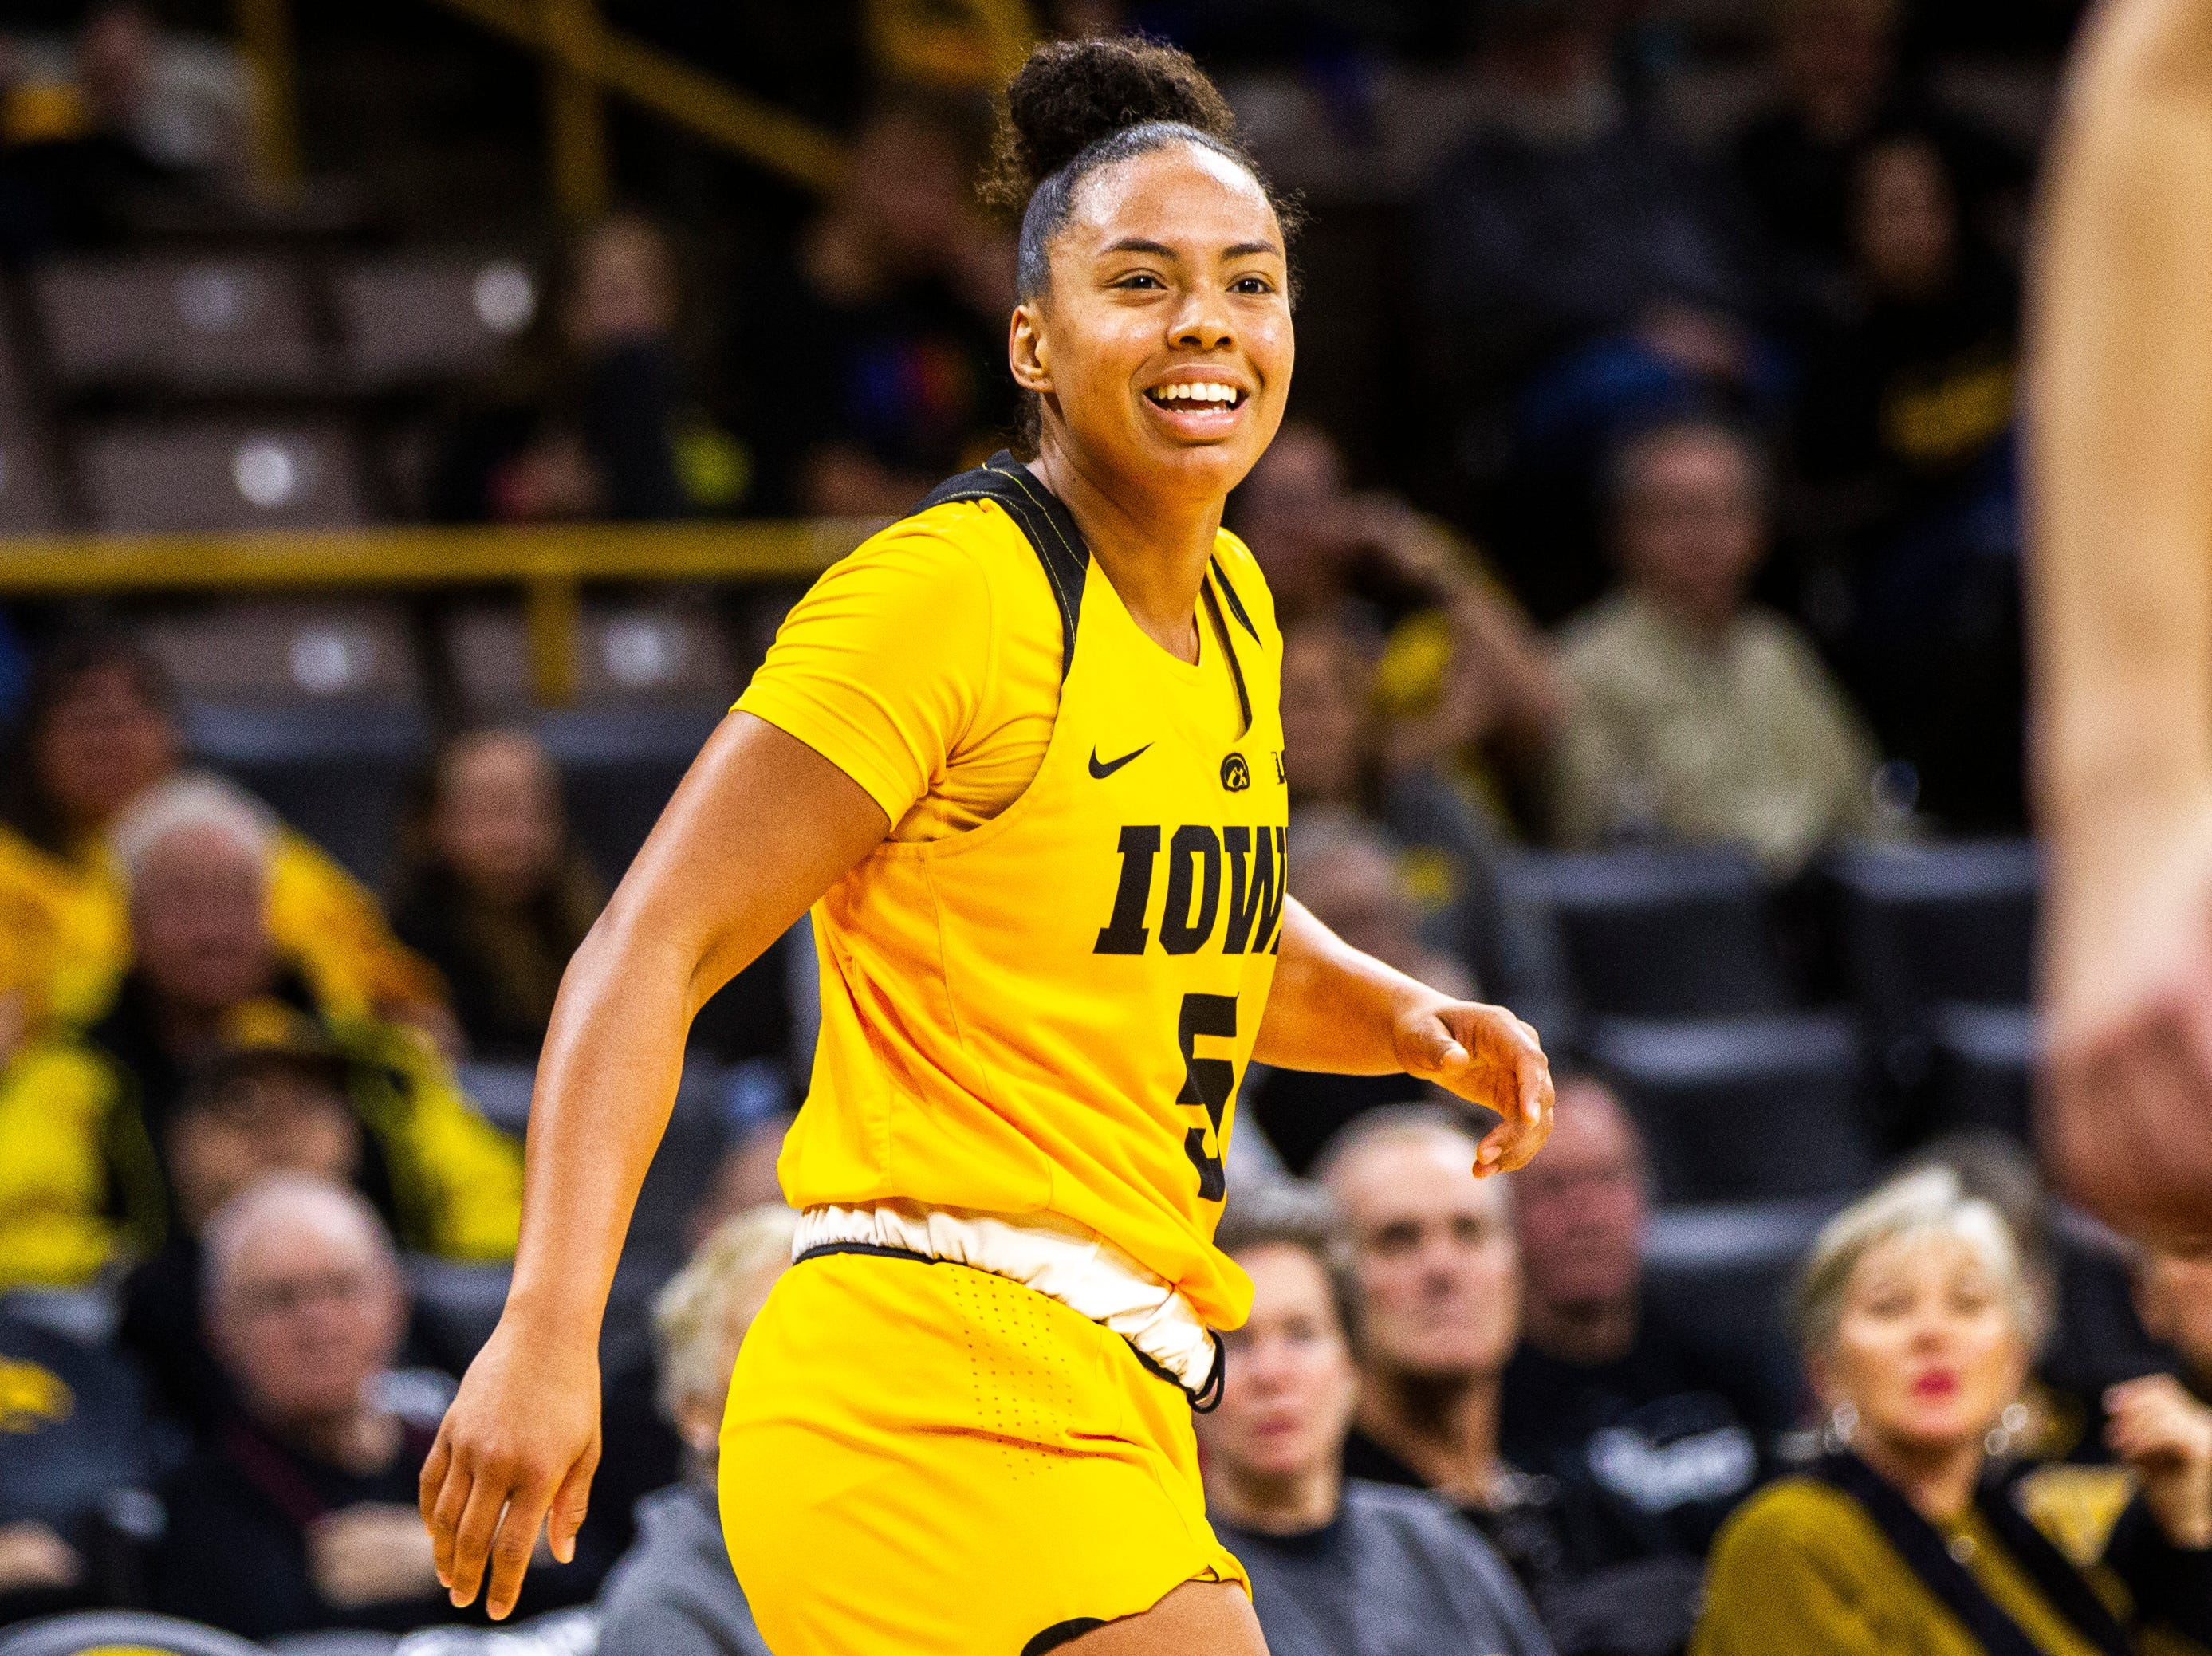 Iowa guard Alexis Sevillian (5) smiles after making a 3-point basket during a NCAA women's basketball game on Sunday, Dec. 2, 2018, at Carver-Hawkeye Arena in Iowa City.